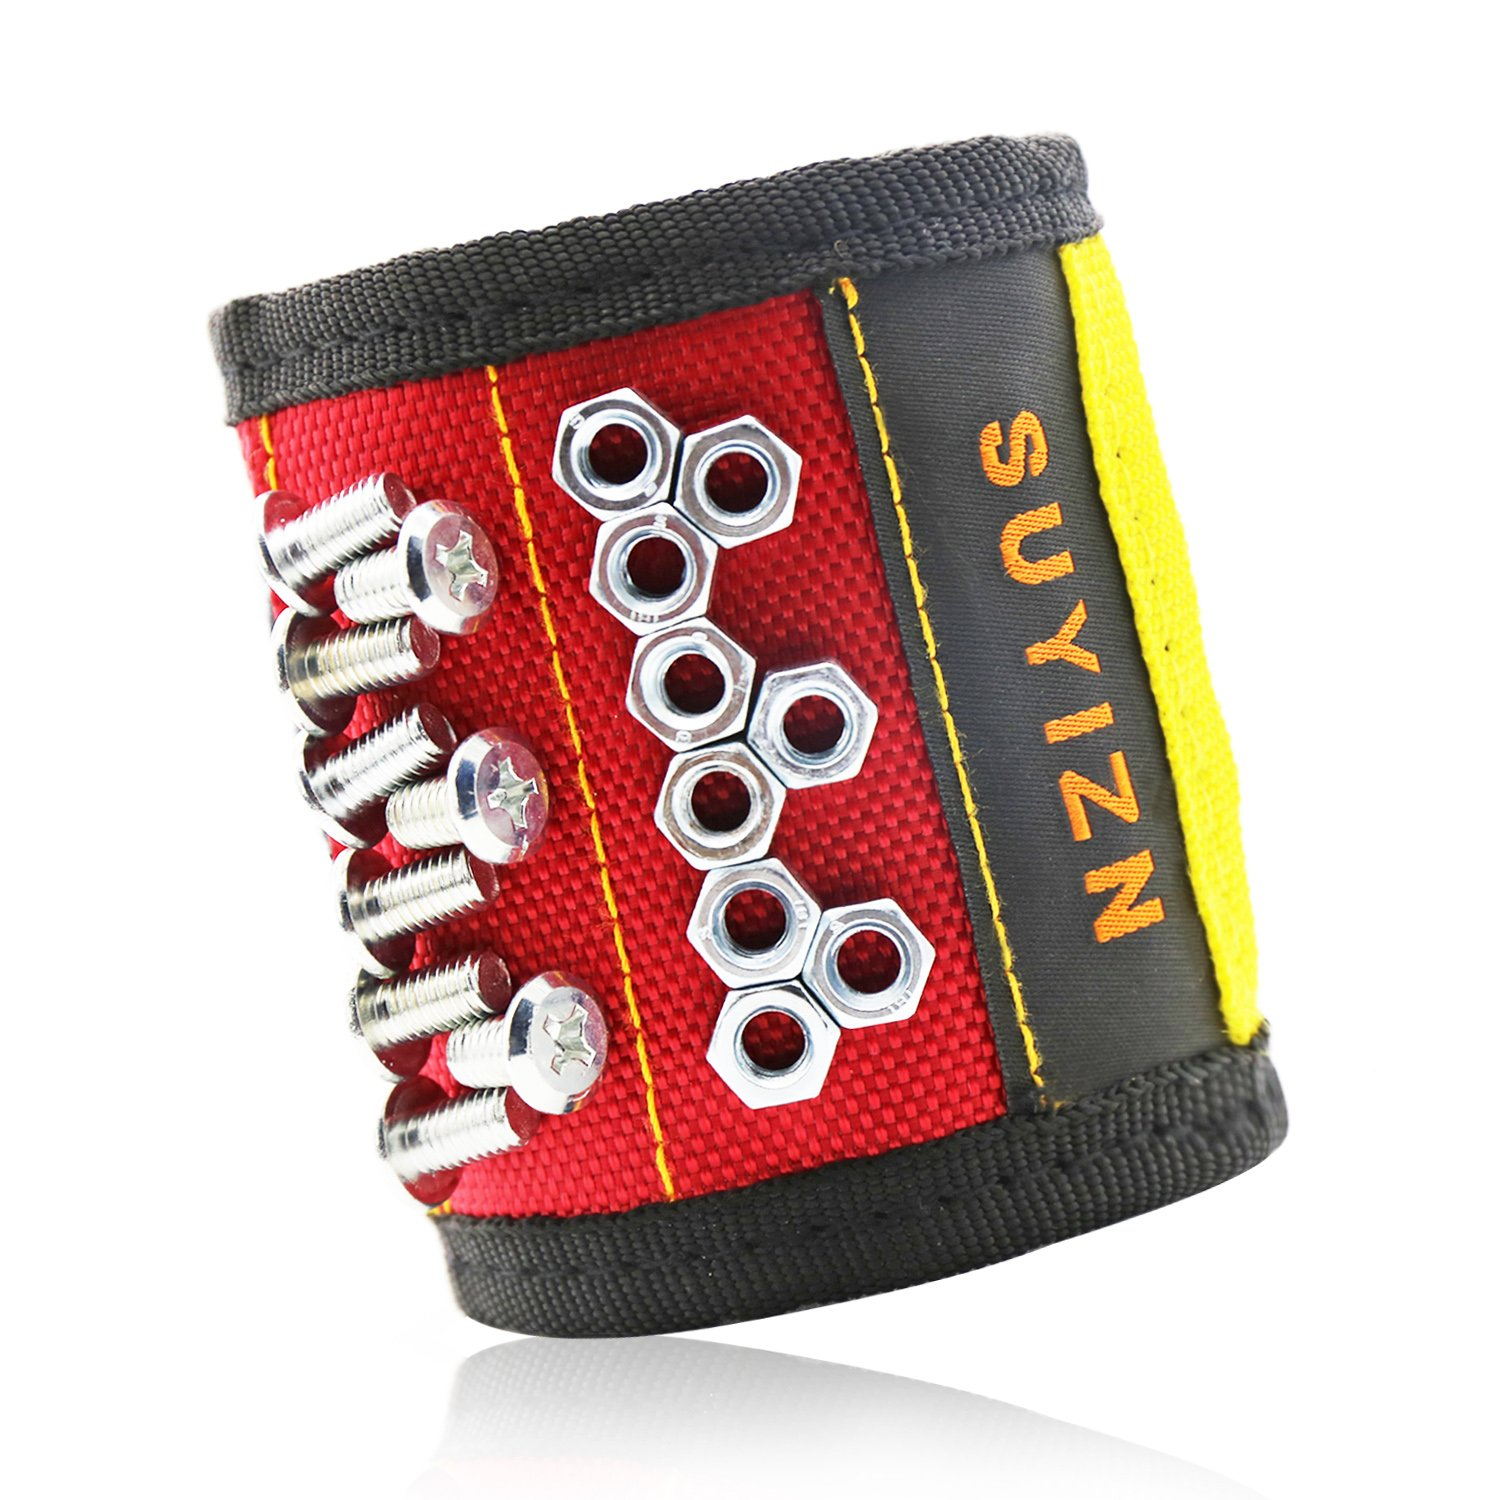 SUYIZN Magnetic Wristband with Strong Magnets for Holding Screws Nails Drilling Bits of The Best Valentine's Day Tools for Men Red